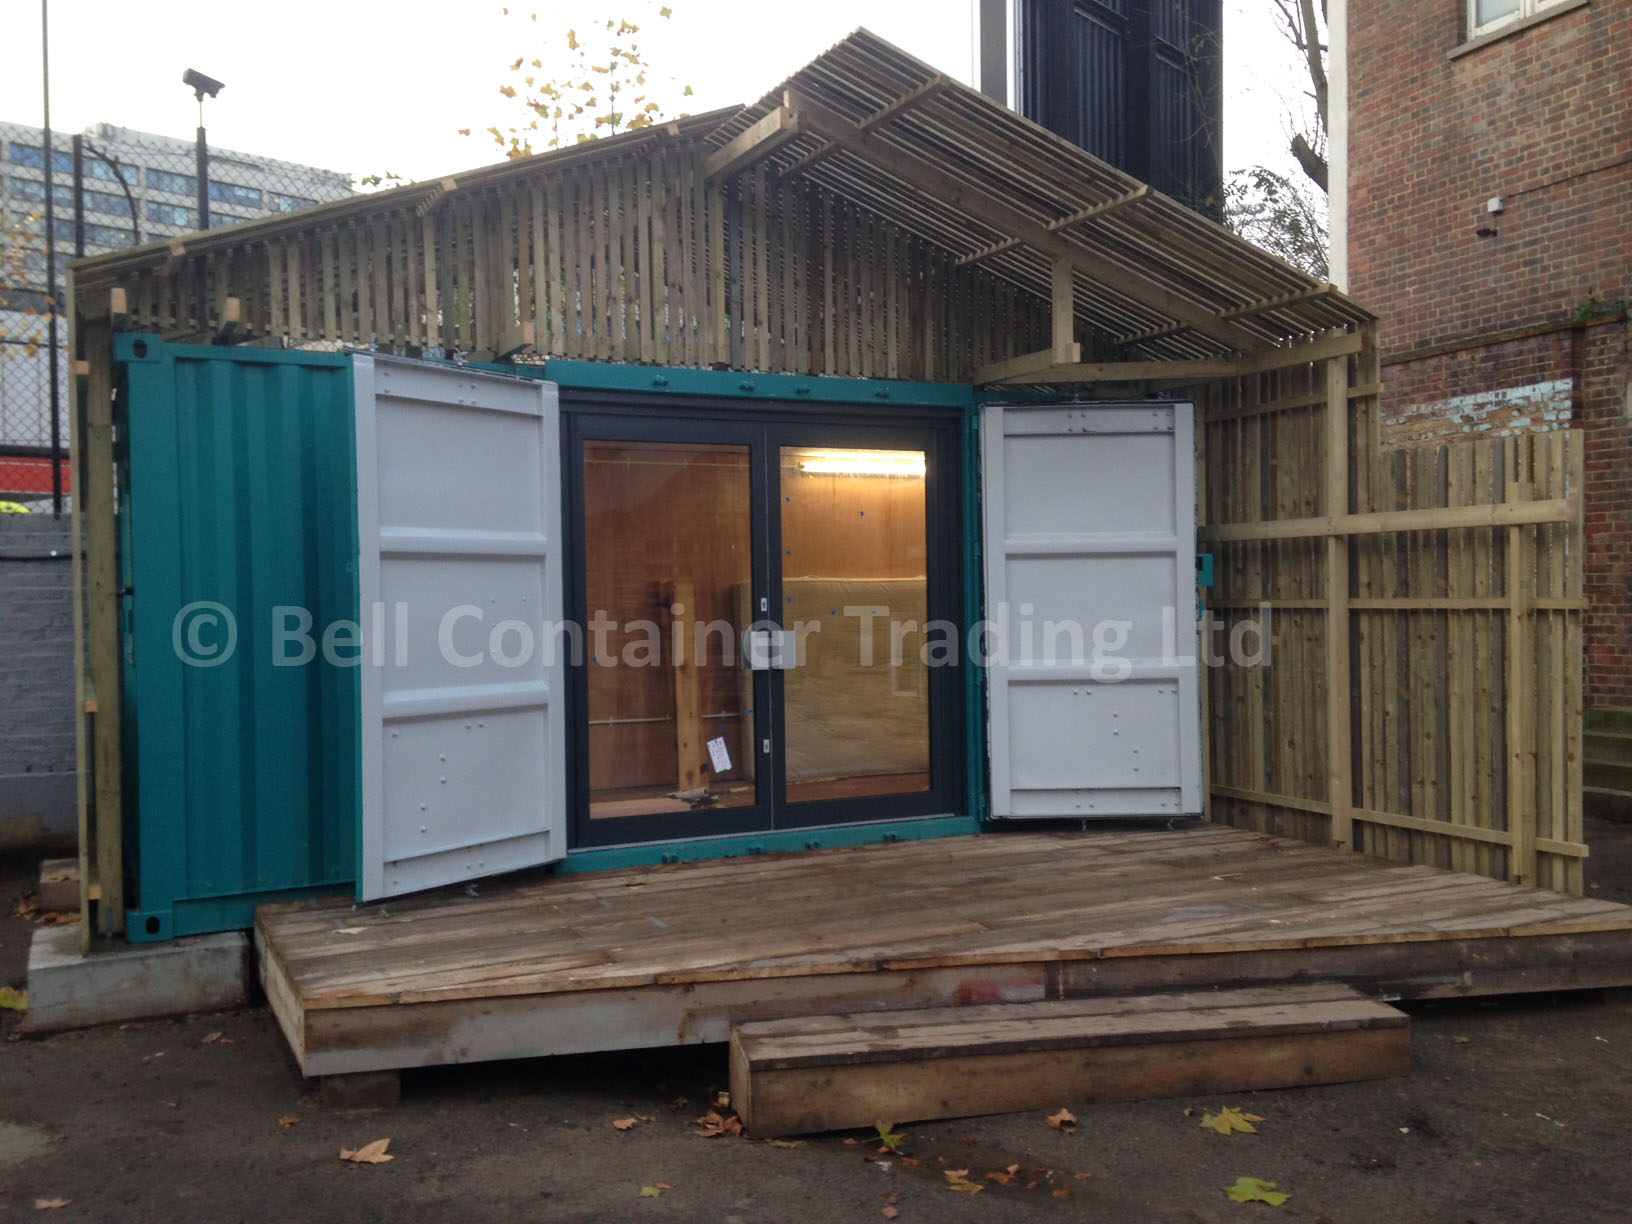 Shipping container studios and popup container shops pop up containers container conversions - Container homes london ...